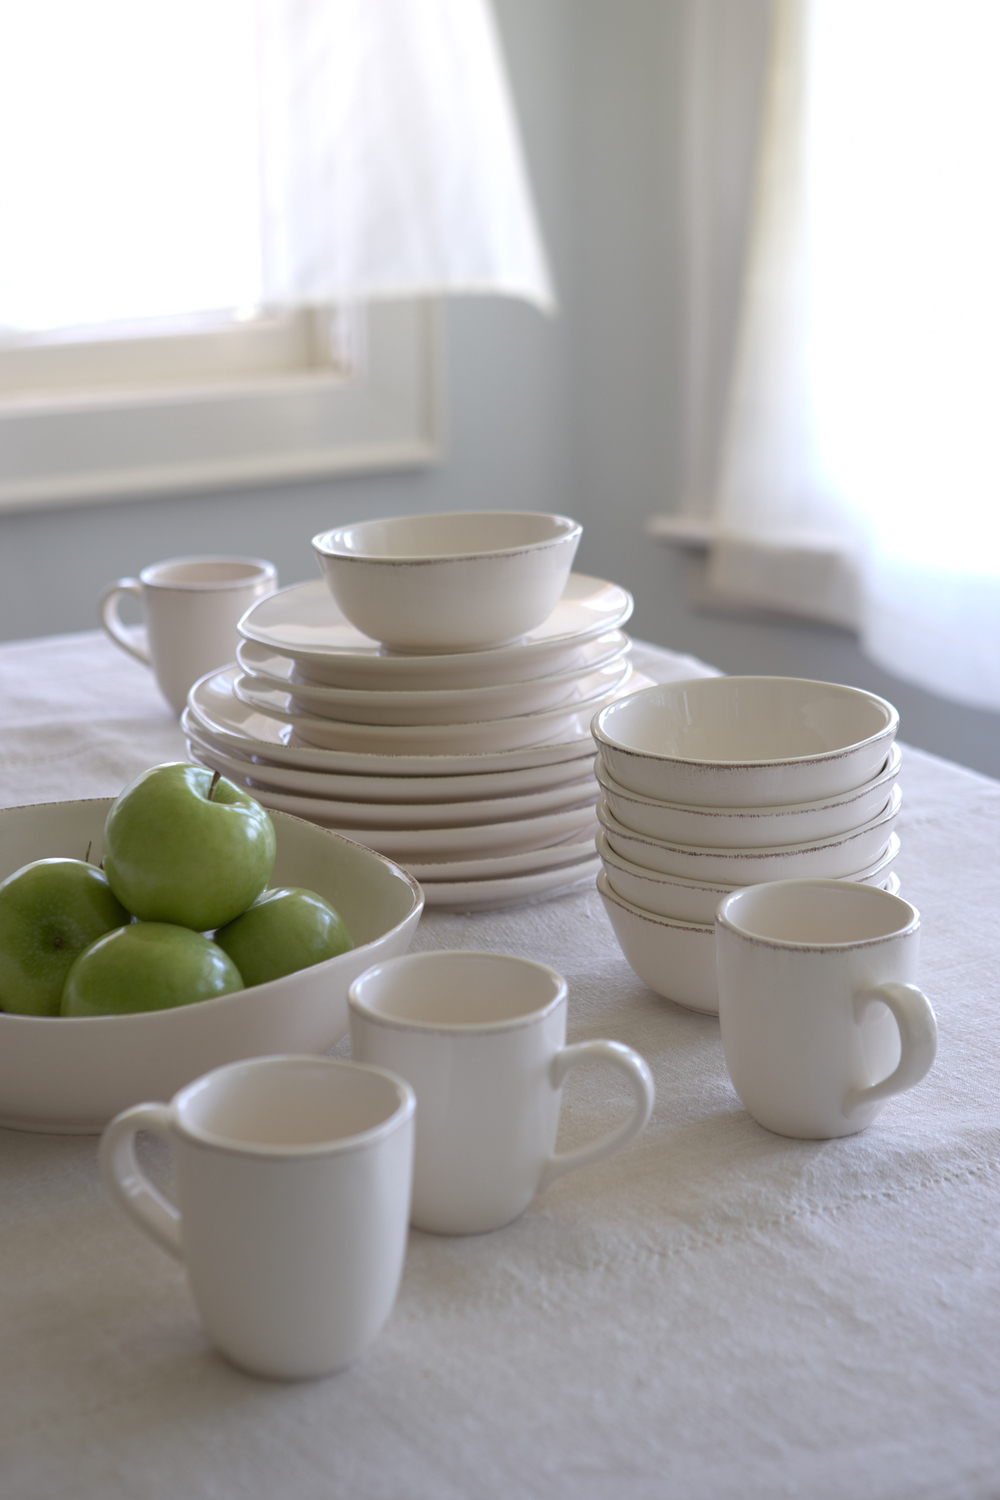 Product Photography StillLife Derek Israelsen Apples Dinnerware